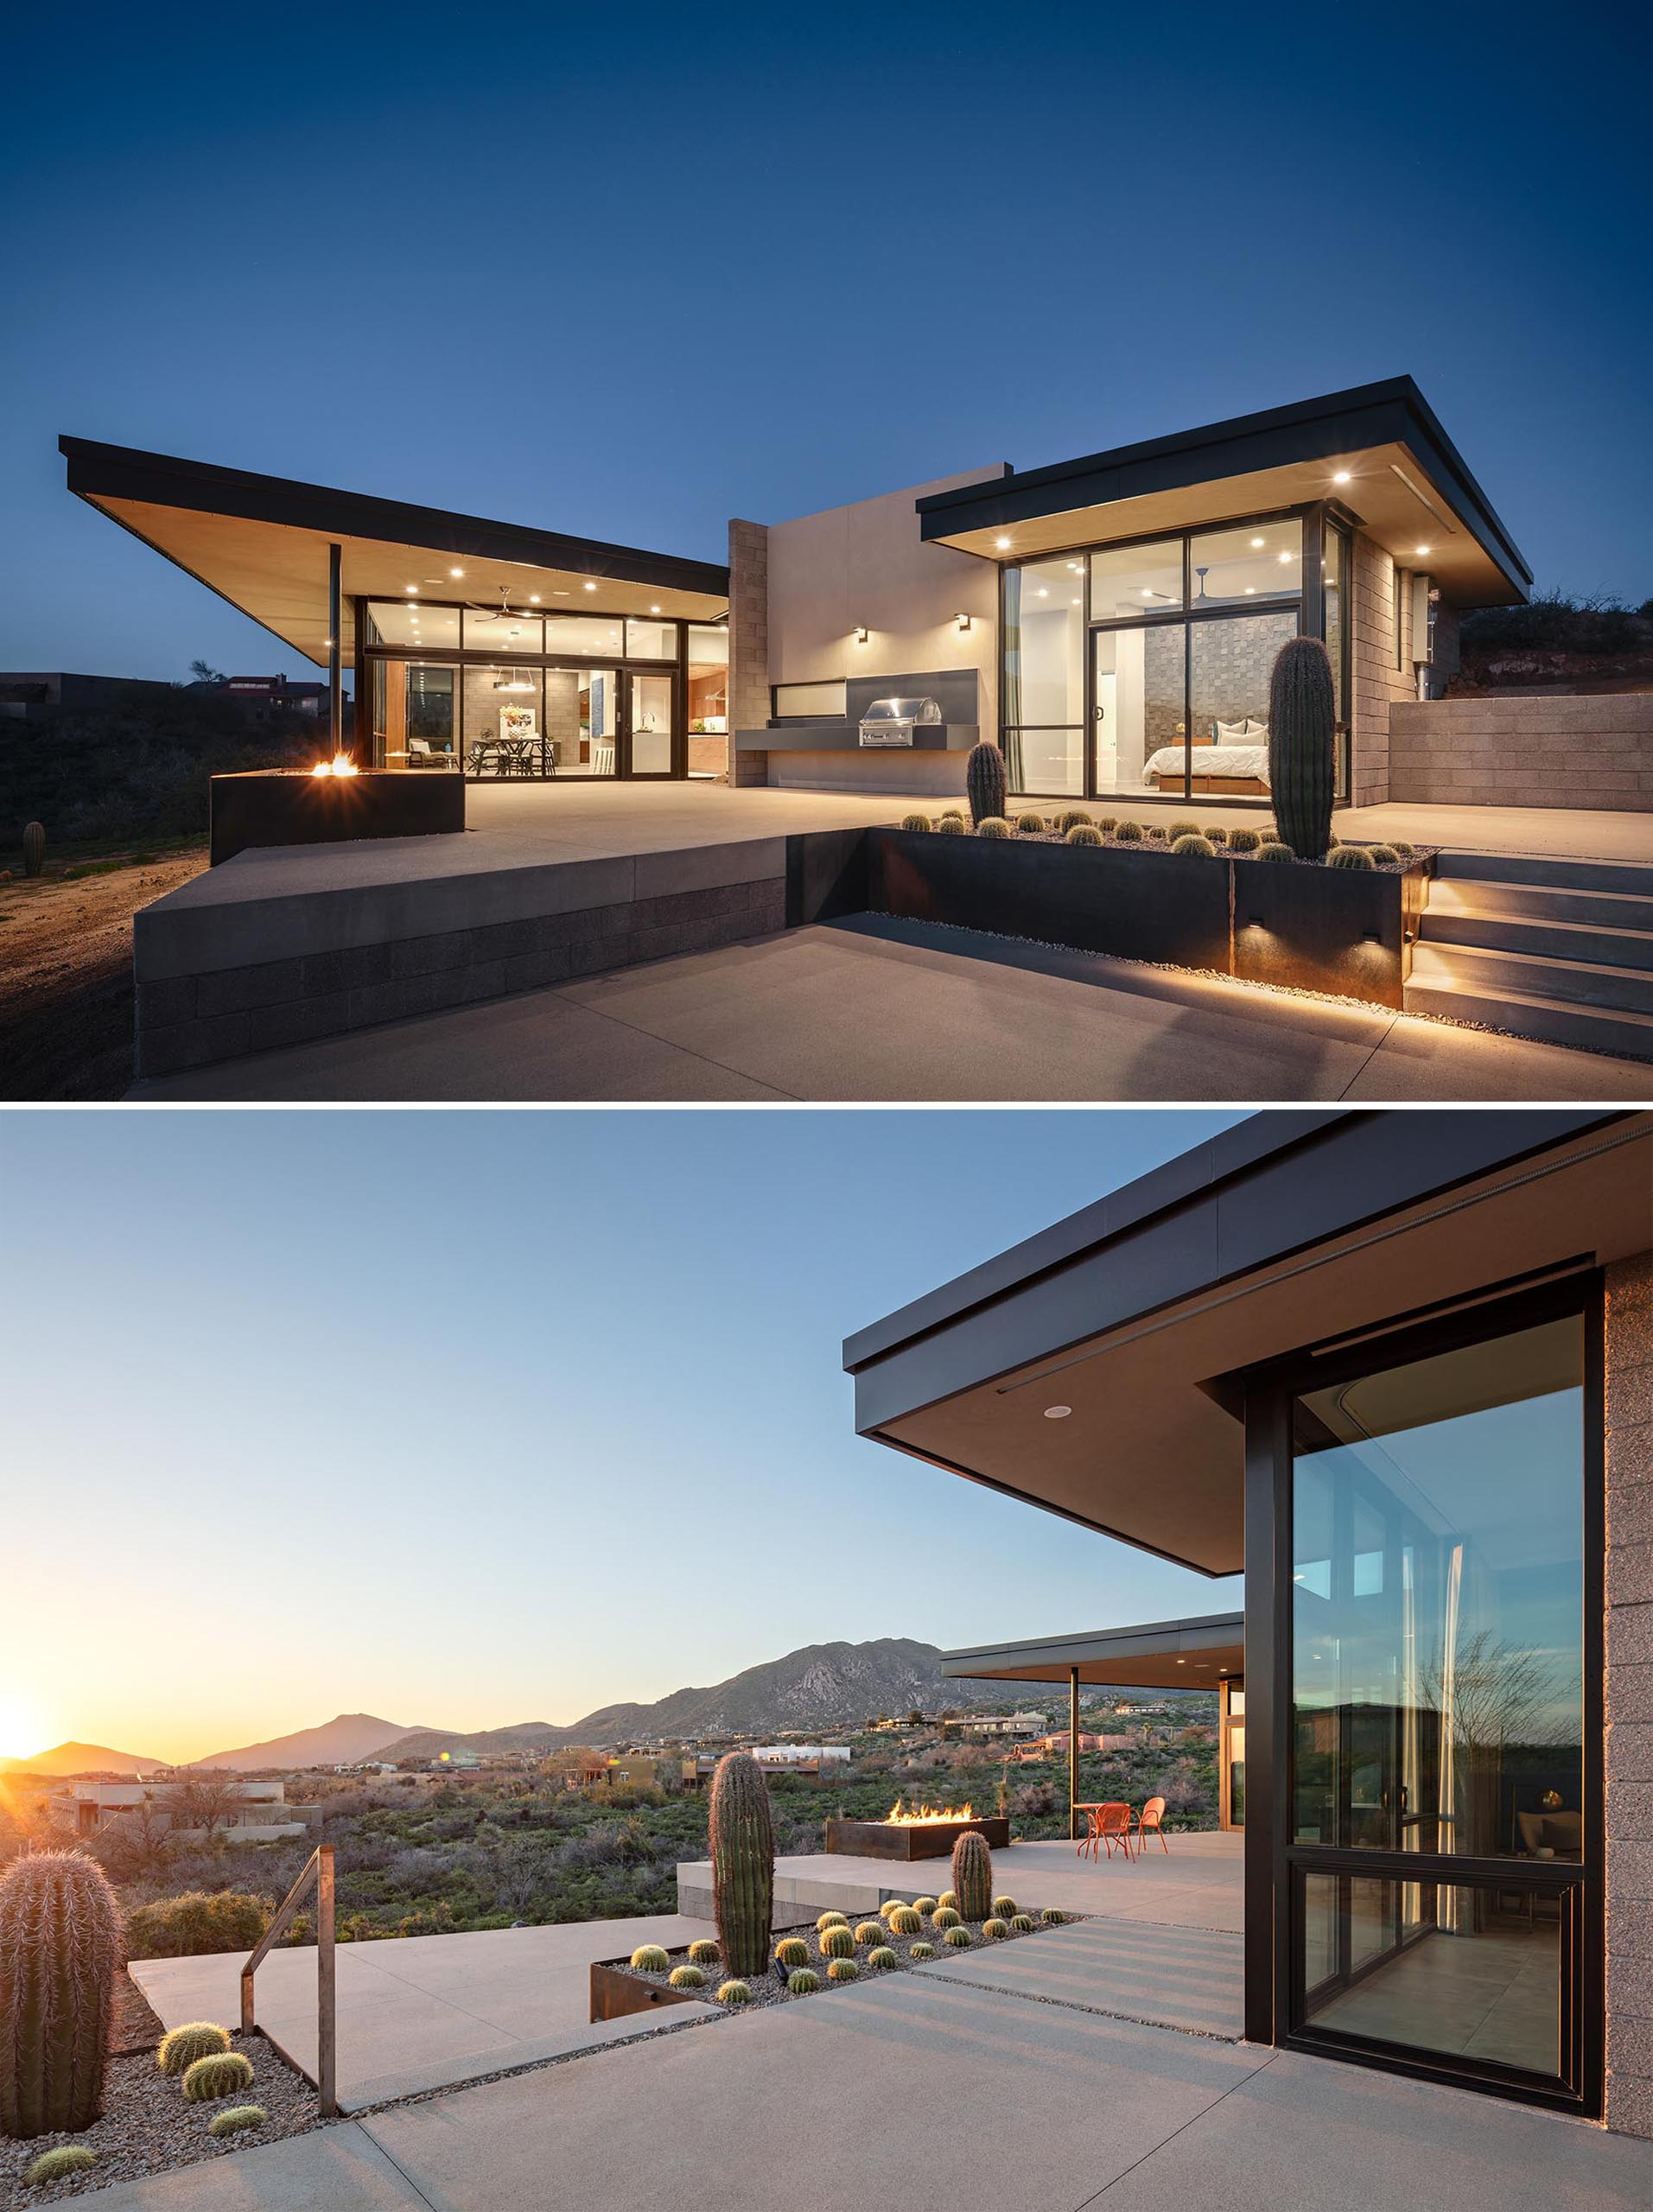 The exterior of this desert home includes a raw steel fire feature, an outdoor floating BBQ, raw steel planters, and a spacious patio. An angled roof facia helps frame the view of the mountain beyond mountains beyond.